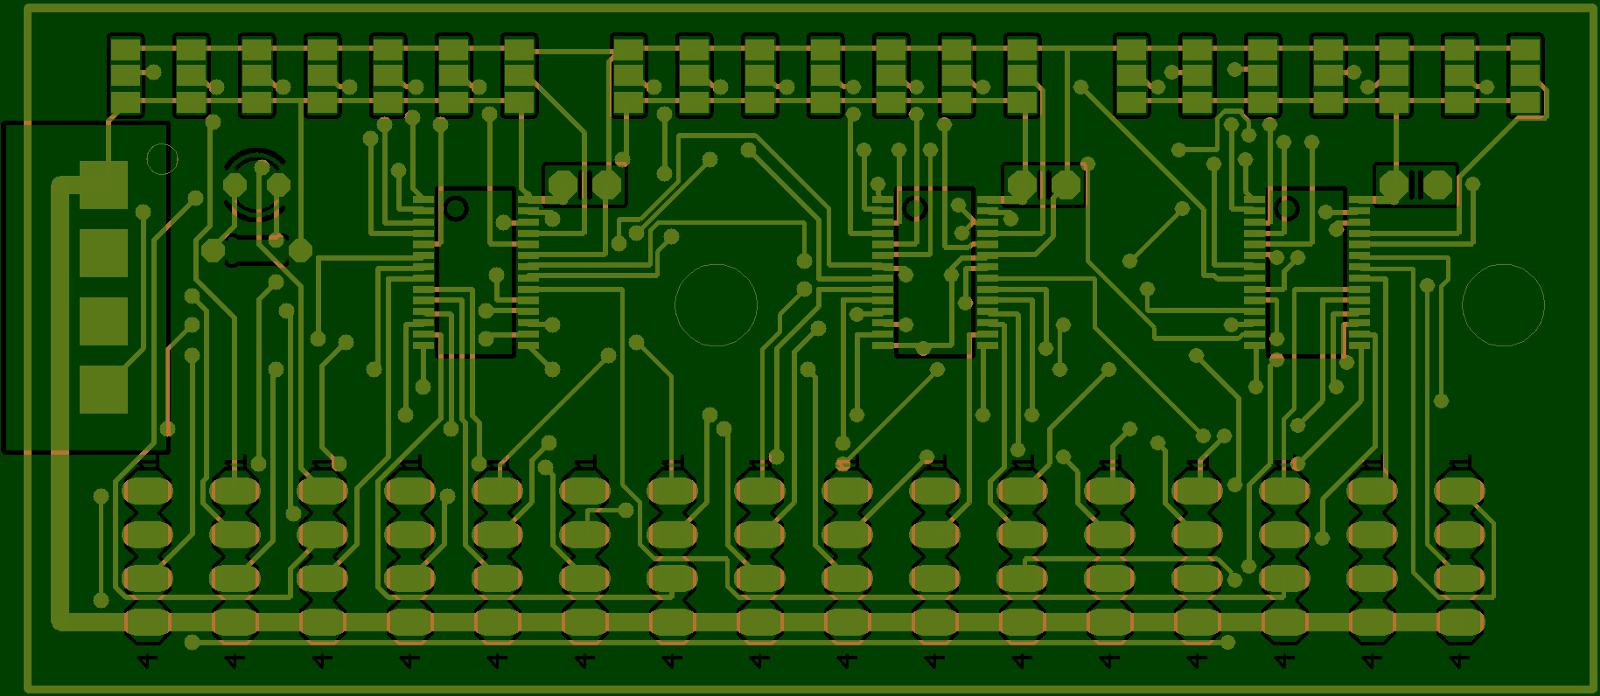 Choosing Pcb Fabrication Online Shawn Wang Medium Printed Circuit Board Fabricate In China Buy Apart From Single Layer Today A Maximum Number Of Boards Incorporates Numerous Layers To Have The Capacity House More Components